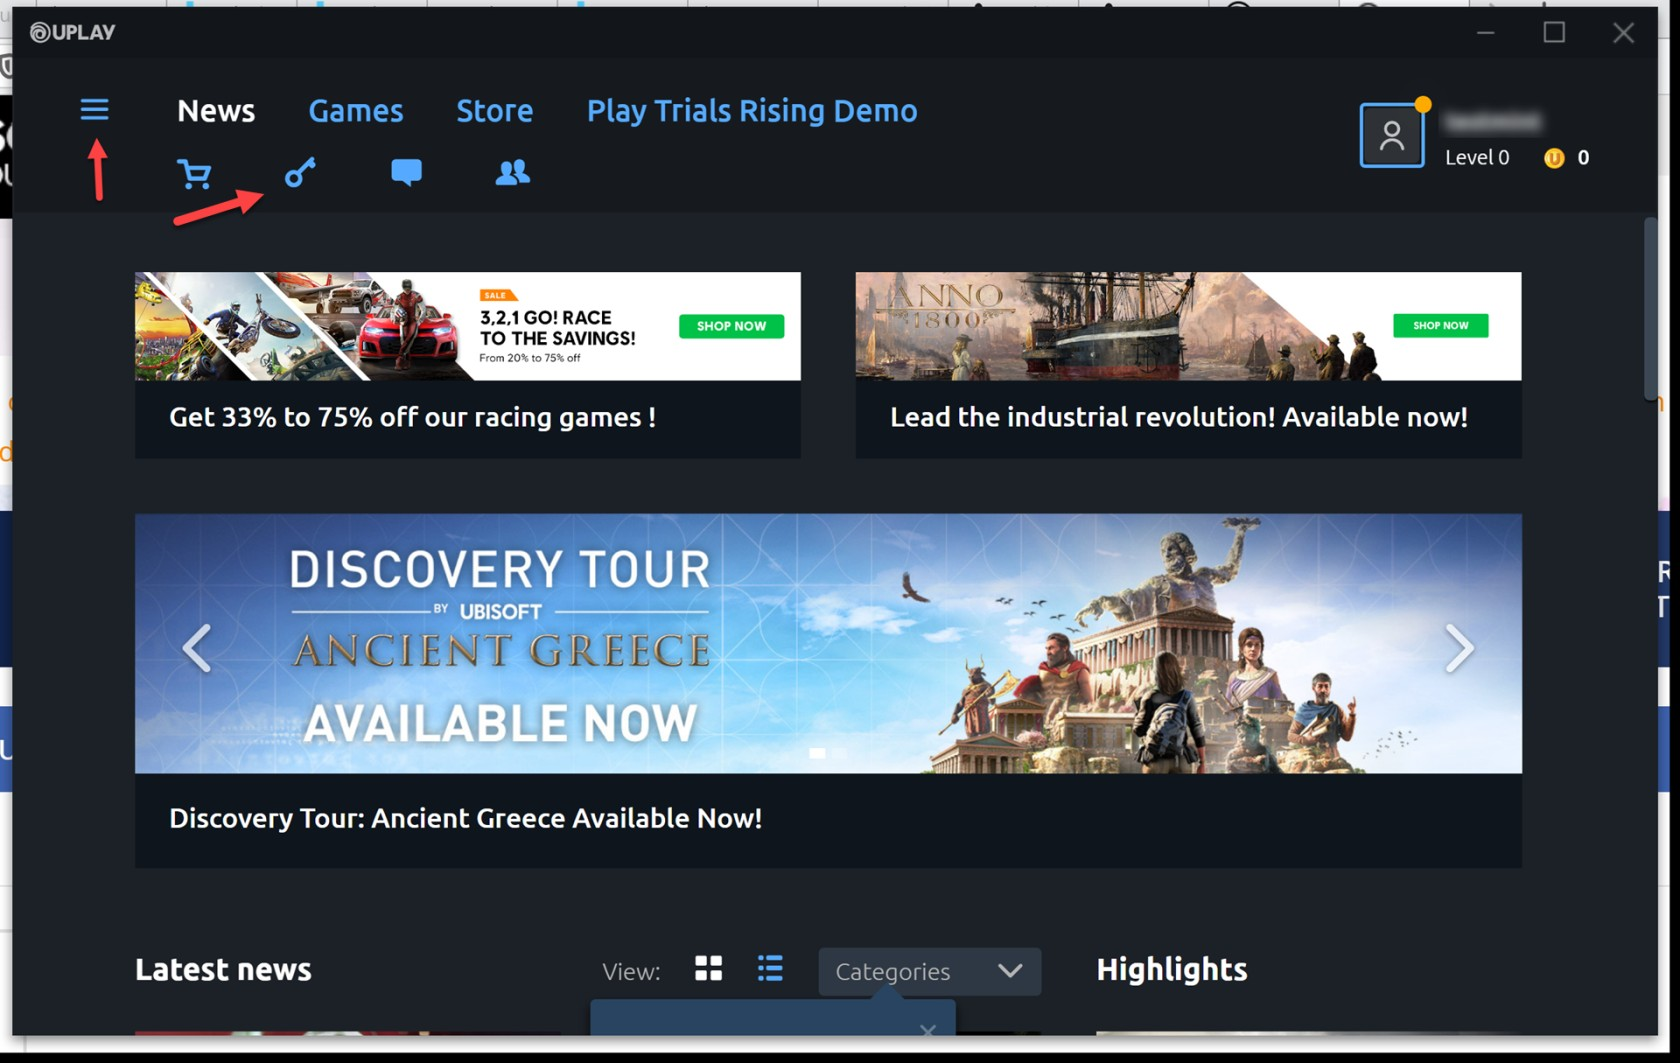 Activate a Product on Uplay